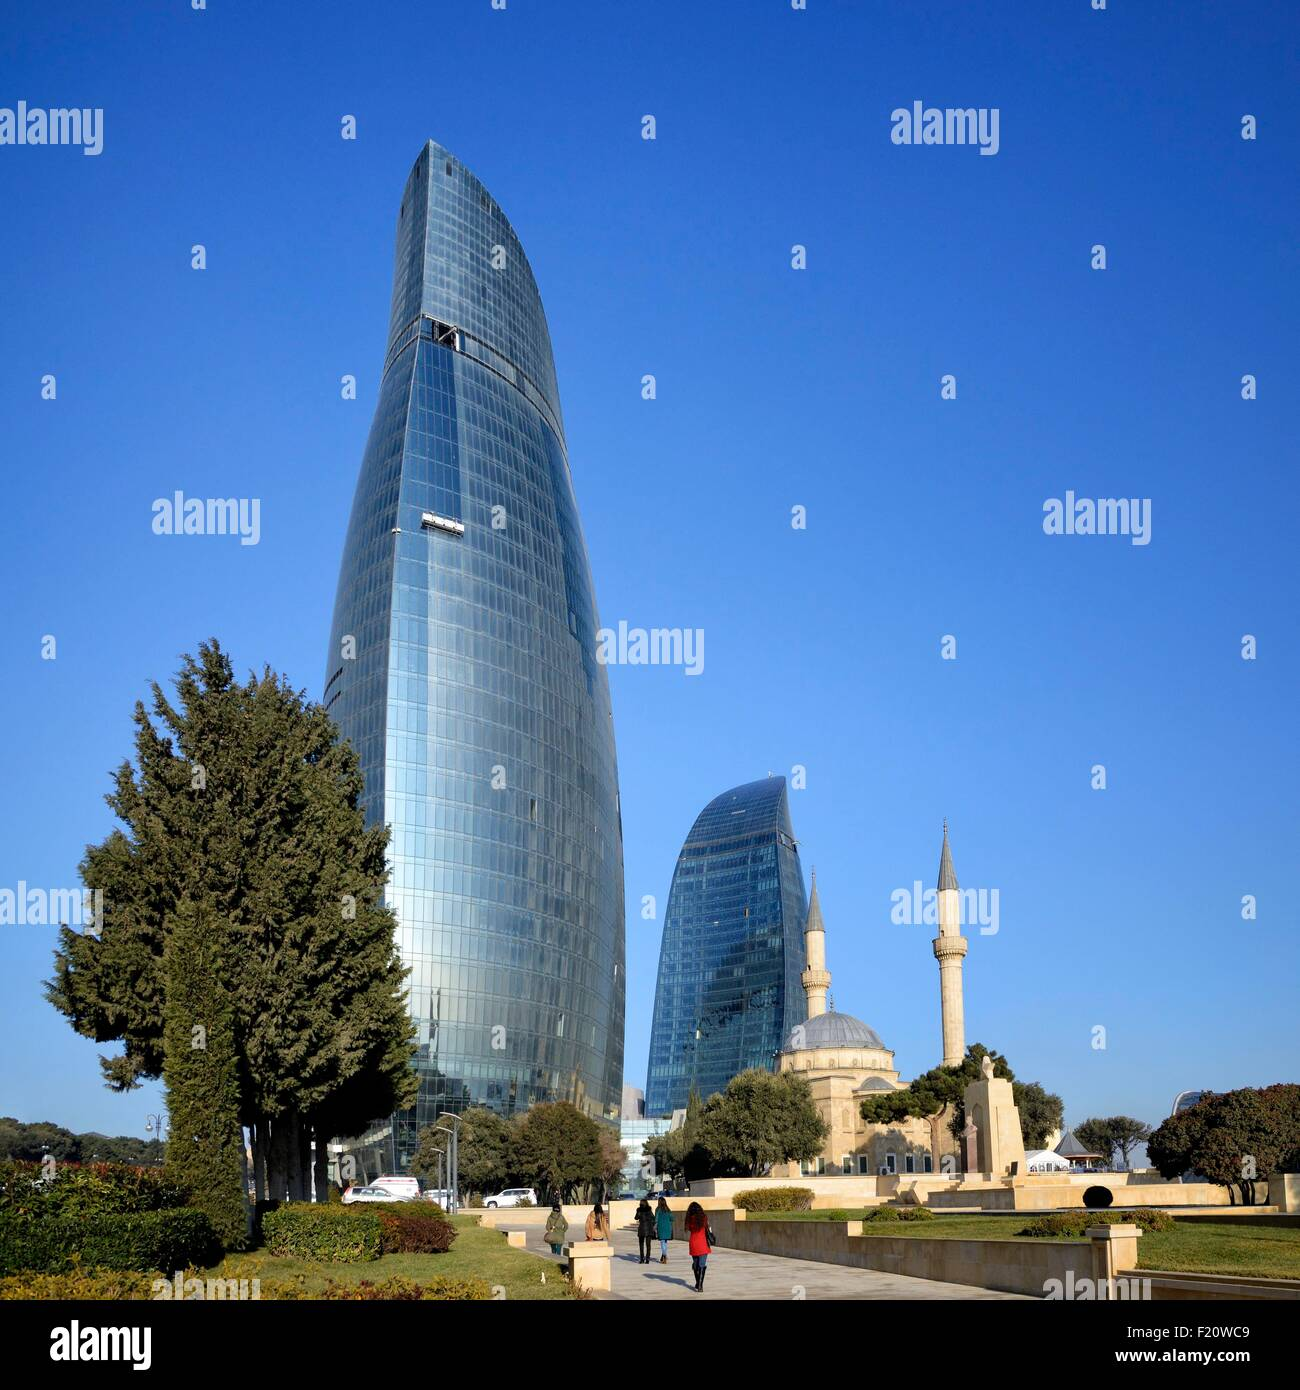 Azerbaijan, Baku, Martyrs' Lane (Alley of Martyrs), small mosque and the Flame Towers Stock Photo